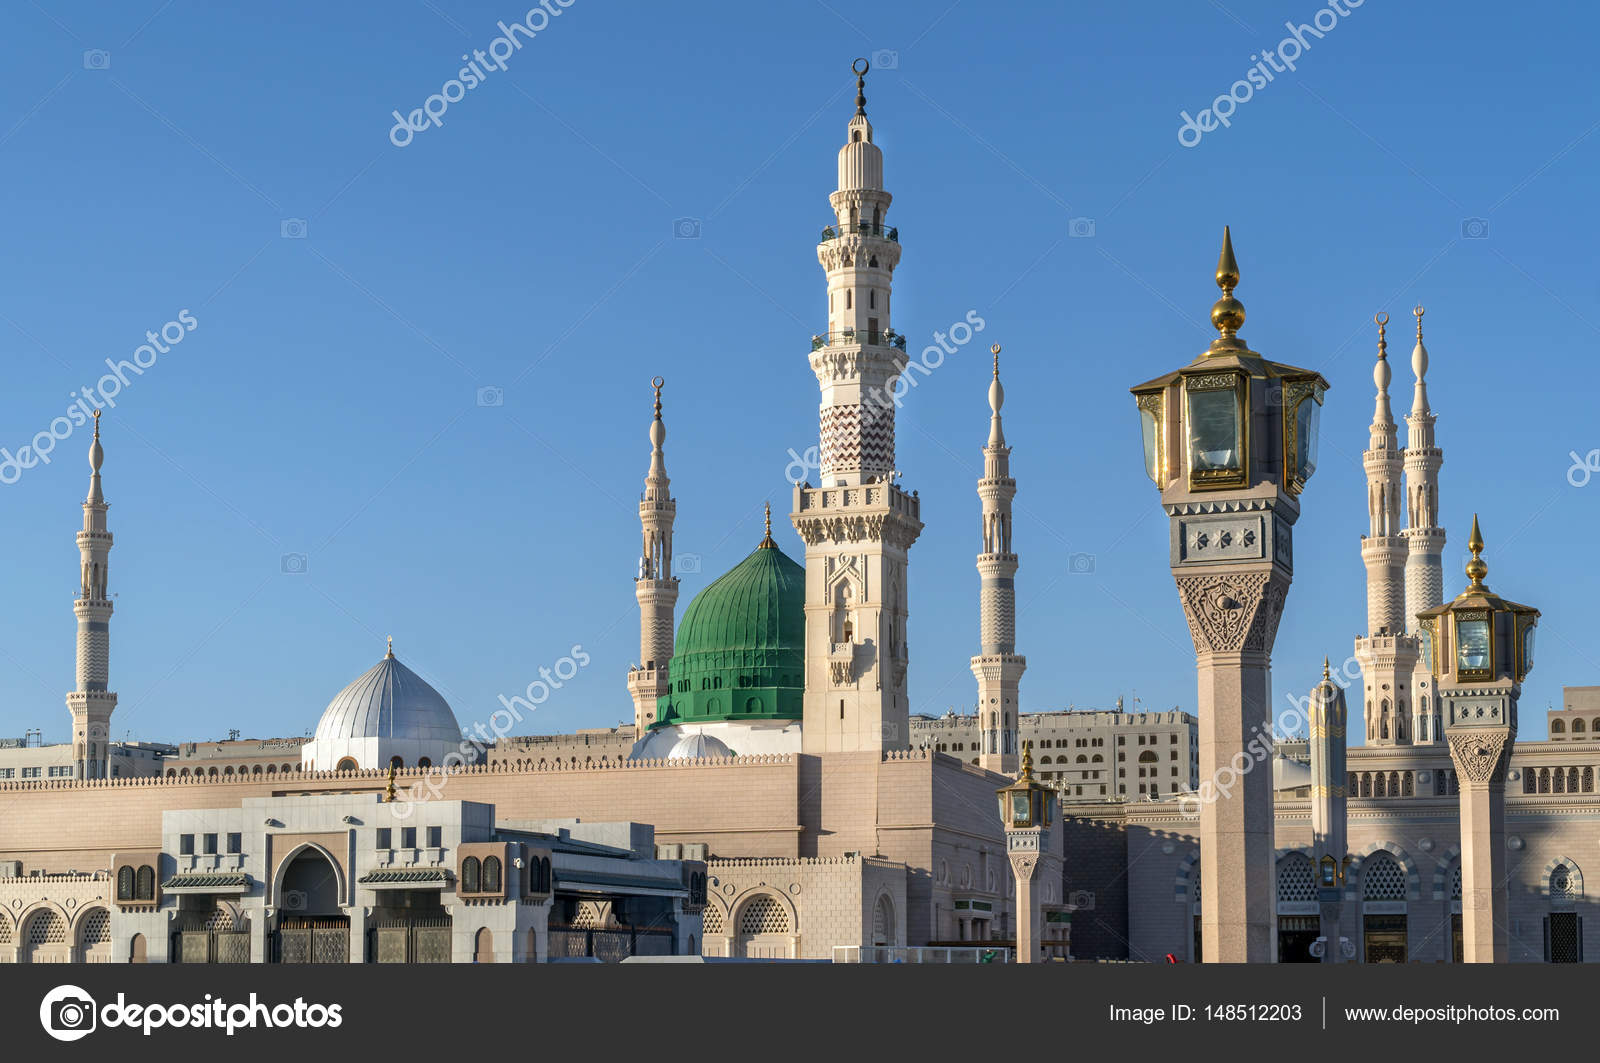 dome and minarets of nabavi mosque — stock photo © ikurucan #148512203